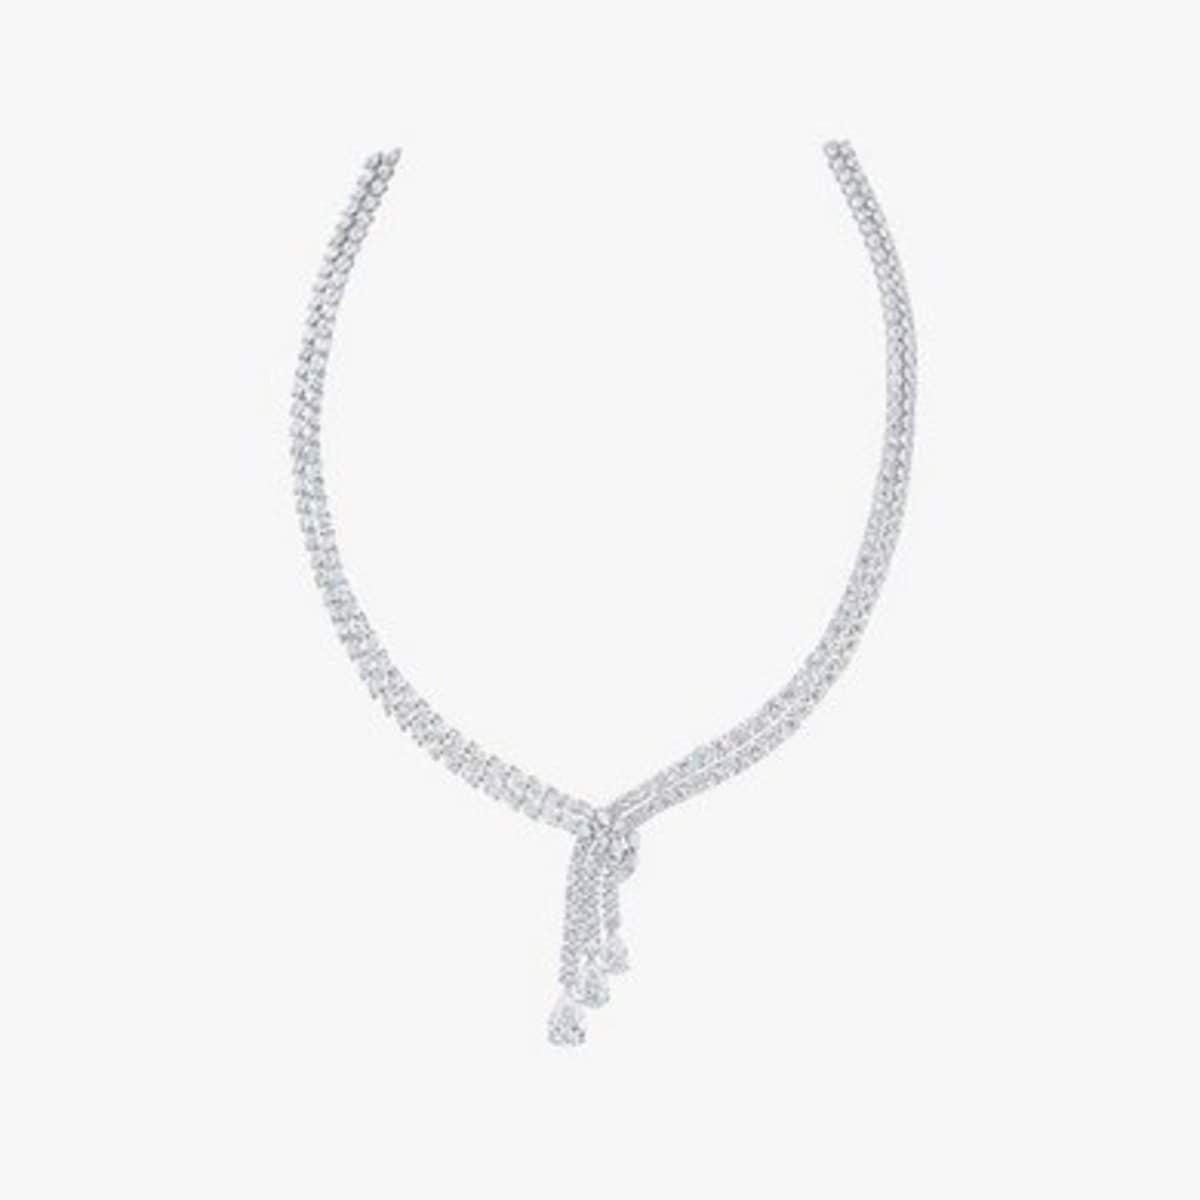 debeers-necklace-couture-jewelry-wrapup